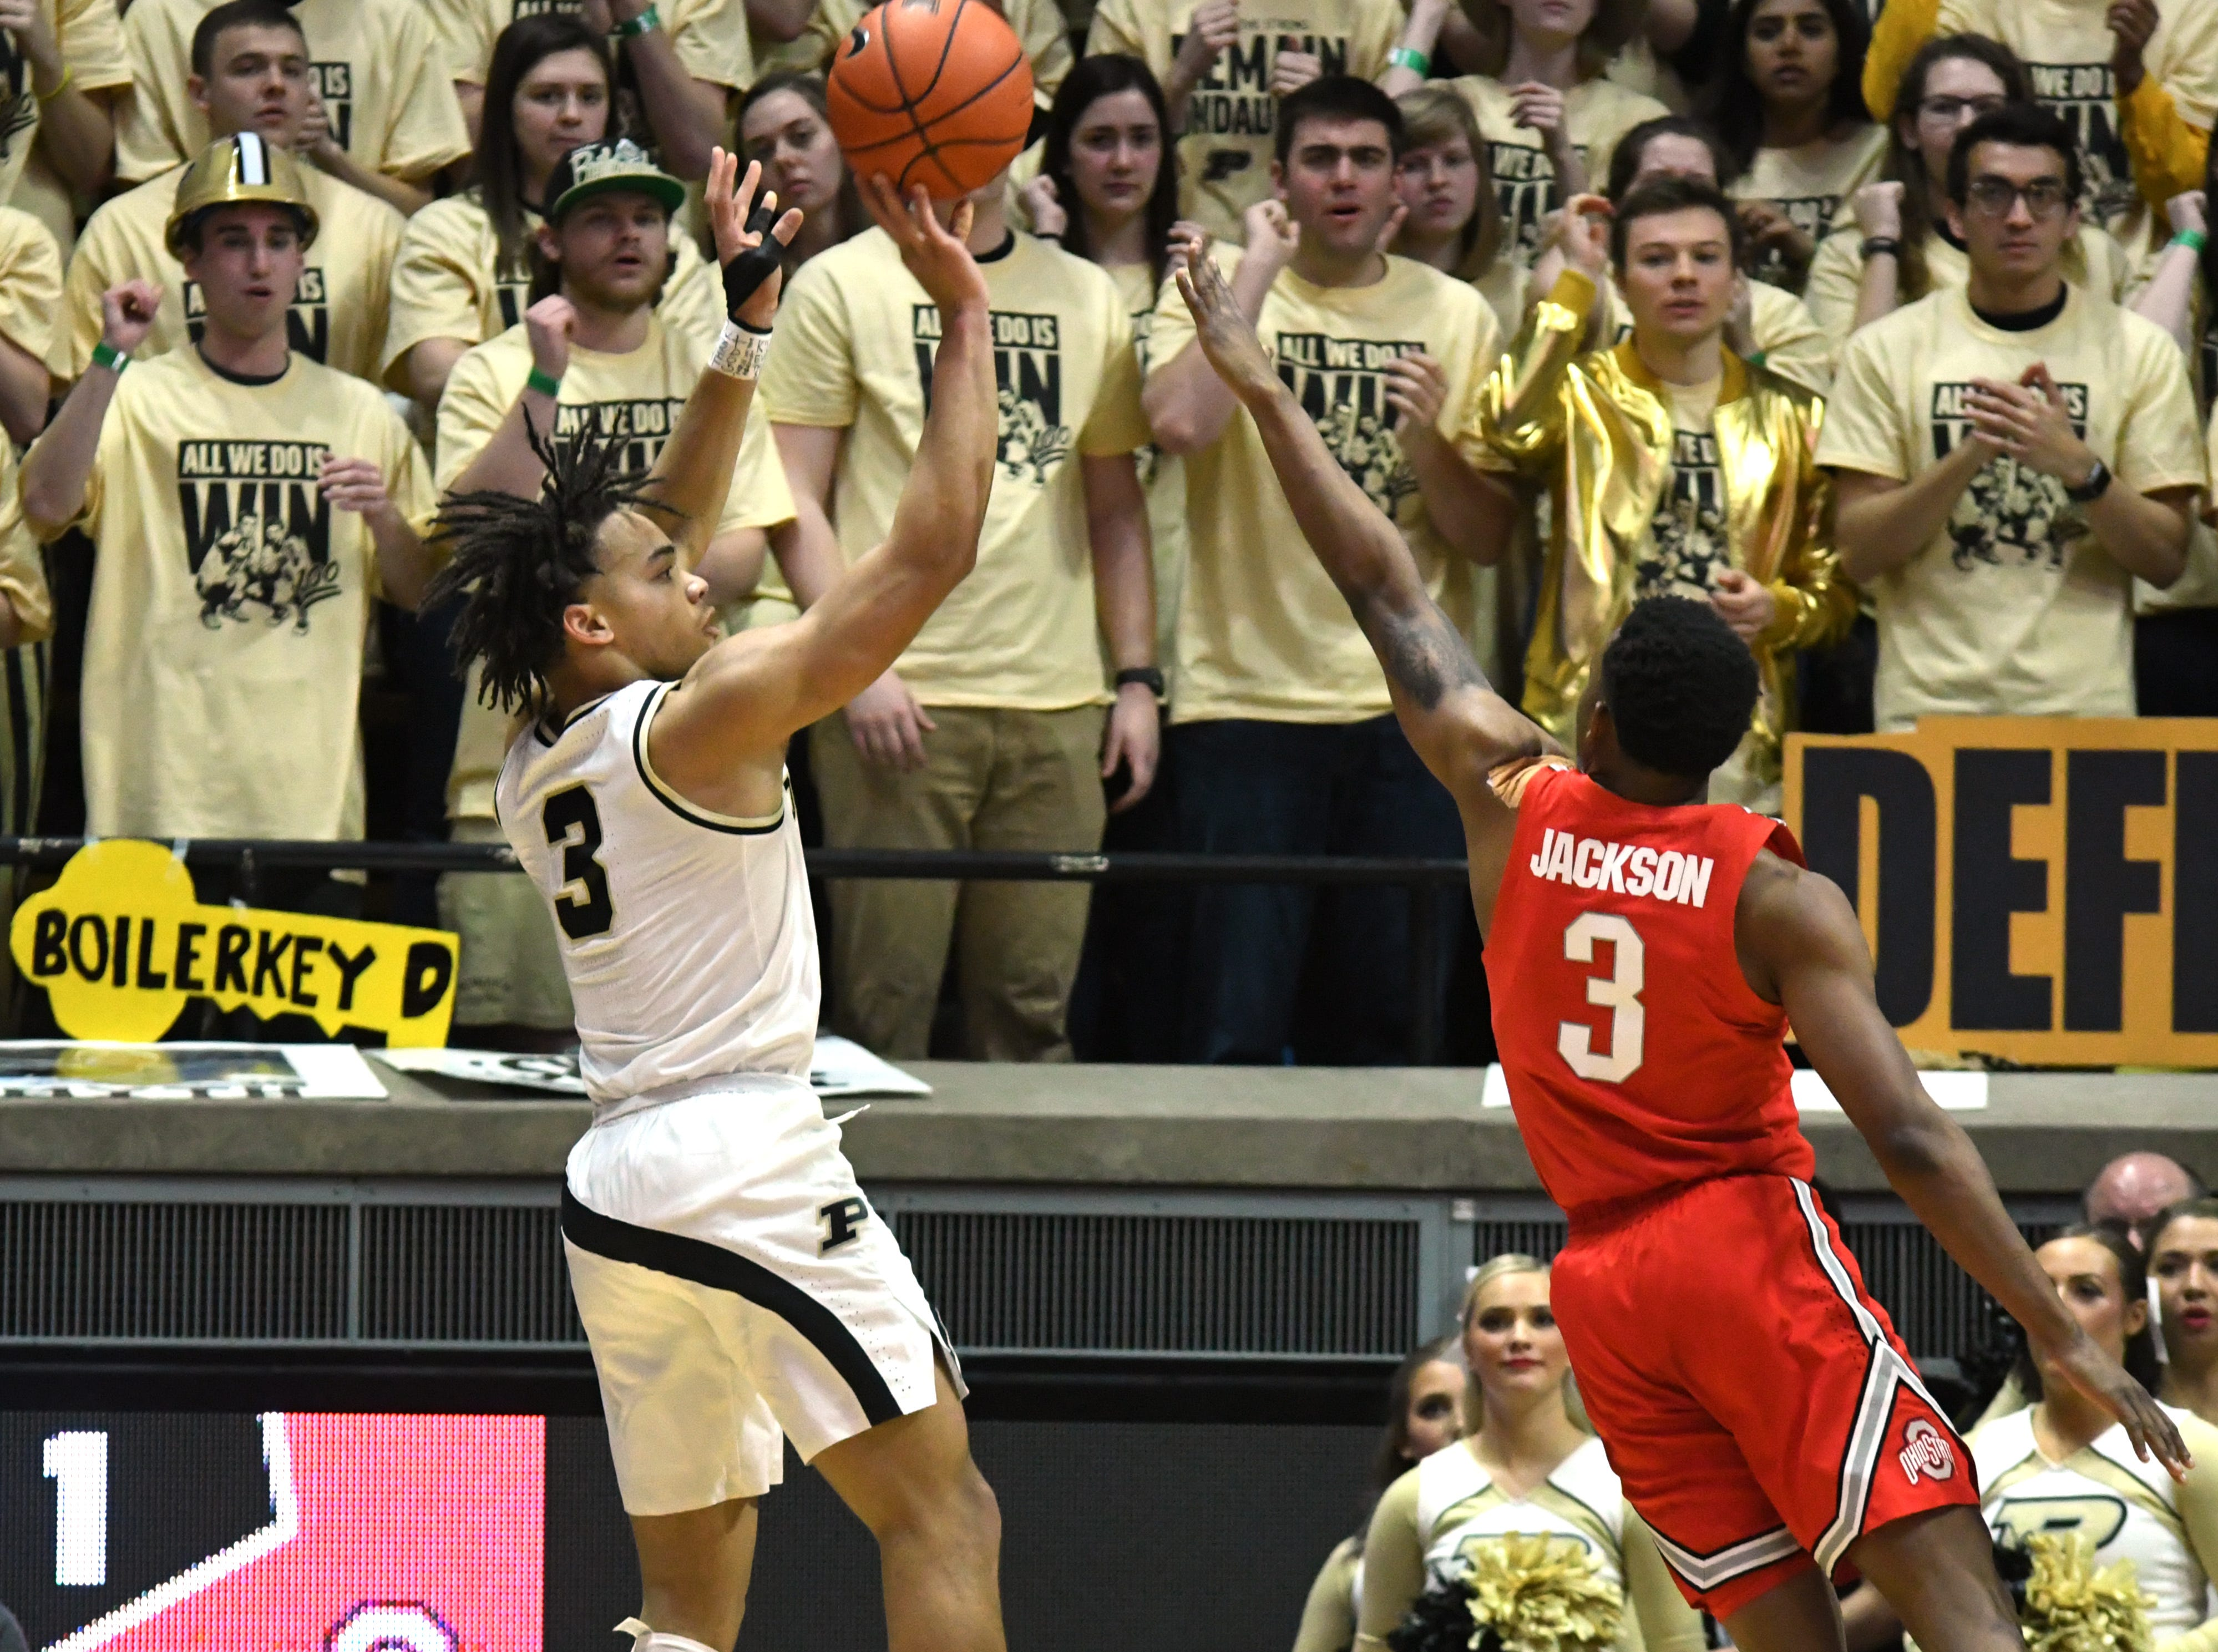 By Frank Oliver for the Journal and Courier --Purdue's Carsen Edwards hits a shot in the first half against Ohio State on March 2, 2019 in West Lafayette.